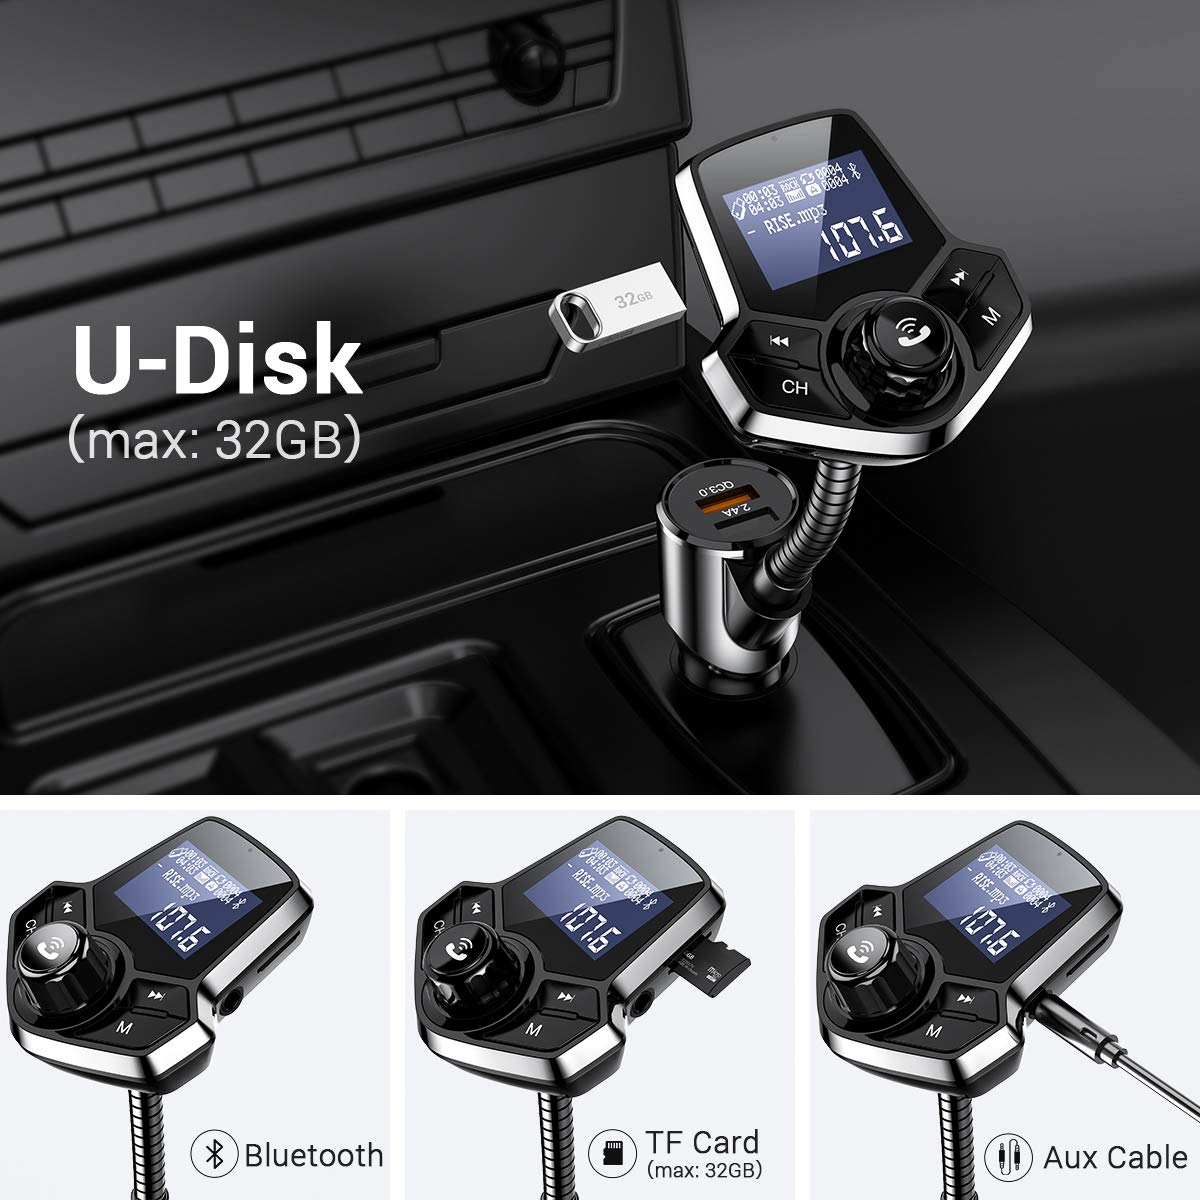 Bluetooth FM Transmitter for Car, QC3.0 Fast Charger Fm Transmitter Bluetooth, Wireless Car Audio Adapter Hands-Free Kit with 1.44'' Display for AUX Input/Output, TF Card and U Disk by Ainope by Ainope (Image #3)